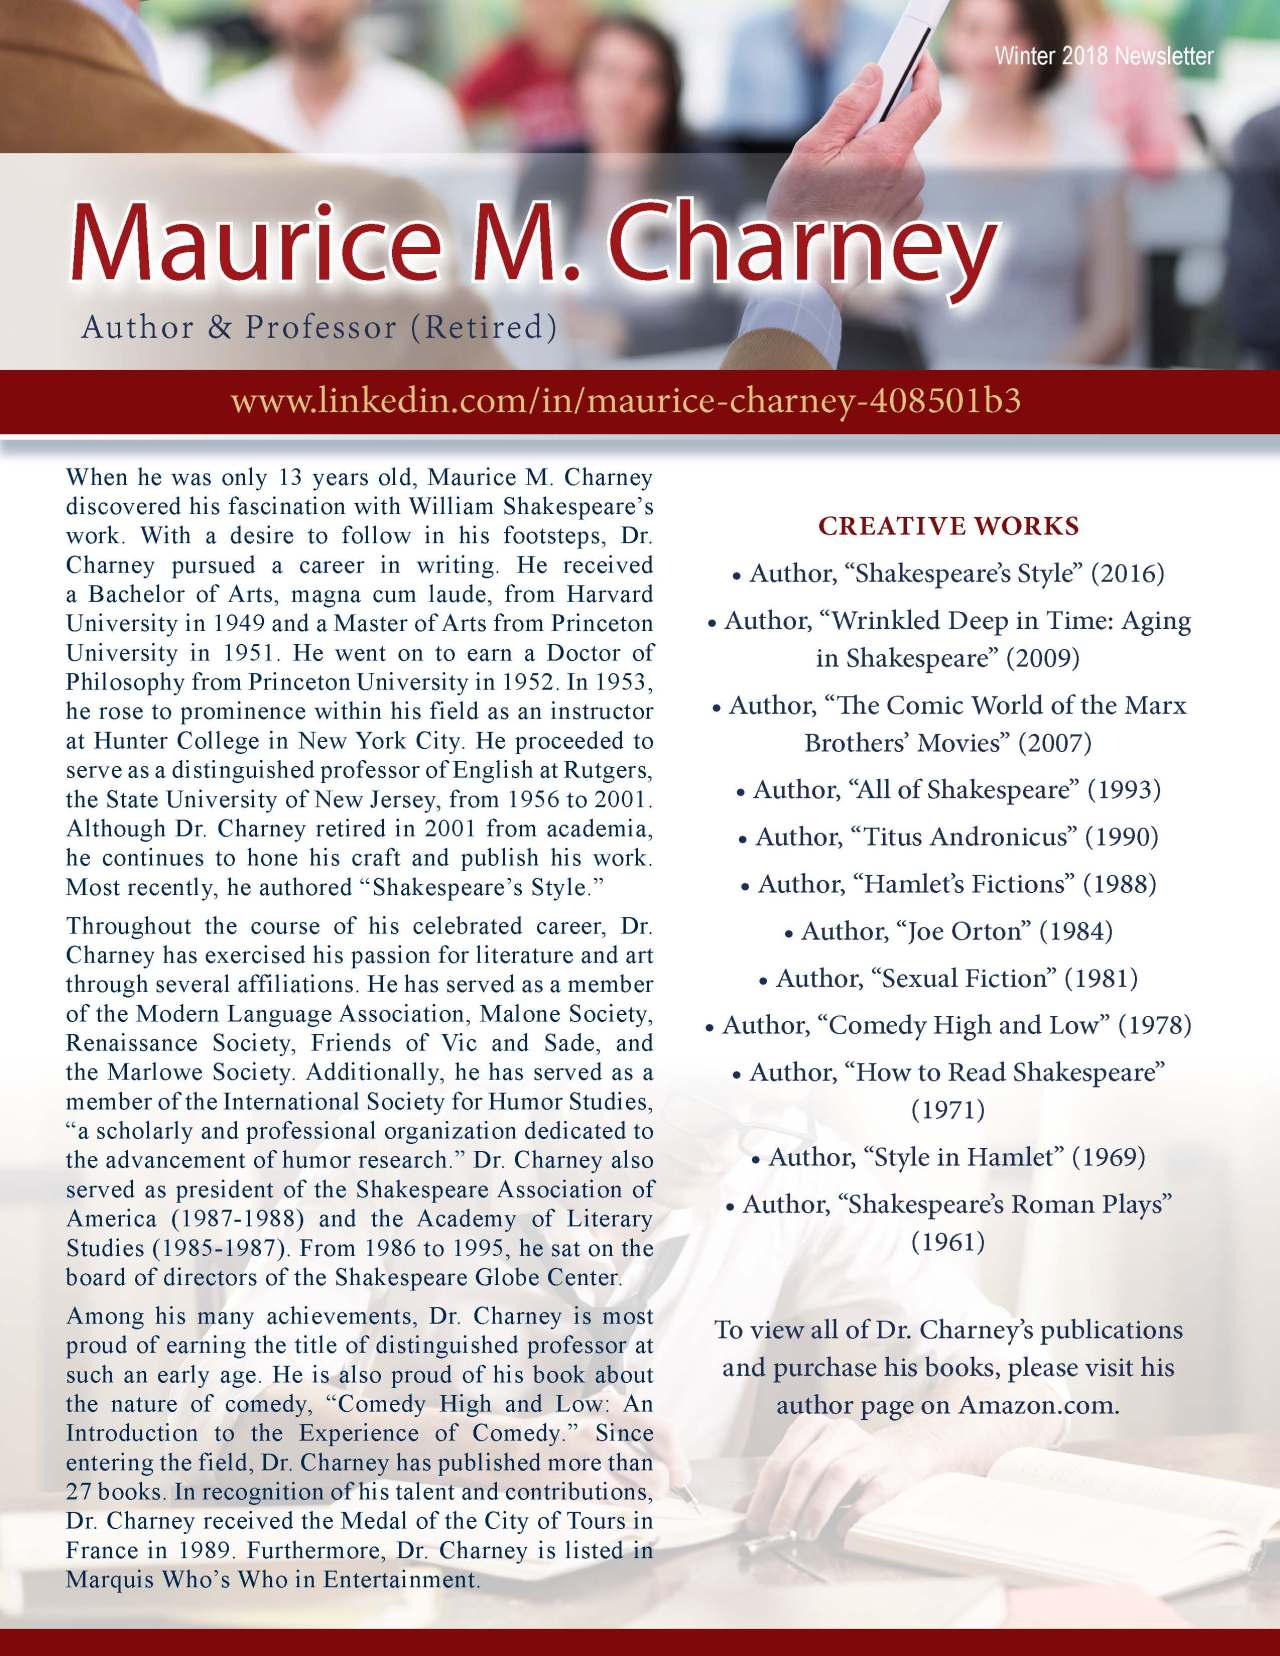 Charney, Maurice 3693647_19813039 Newsletter REVISED.jpg